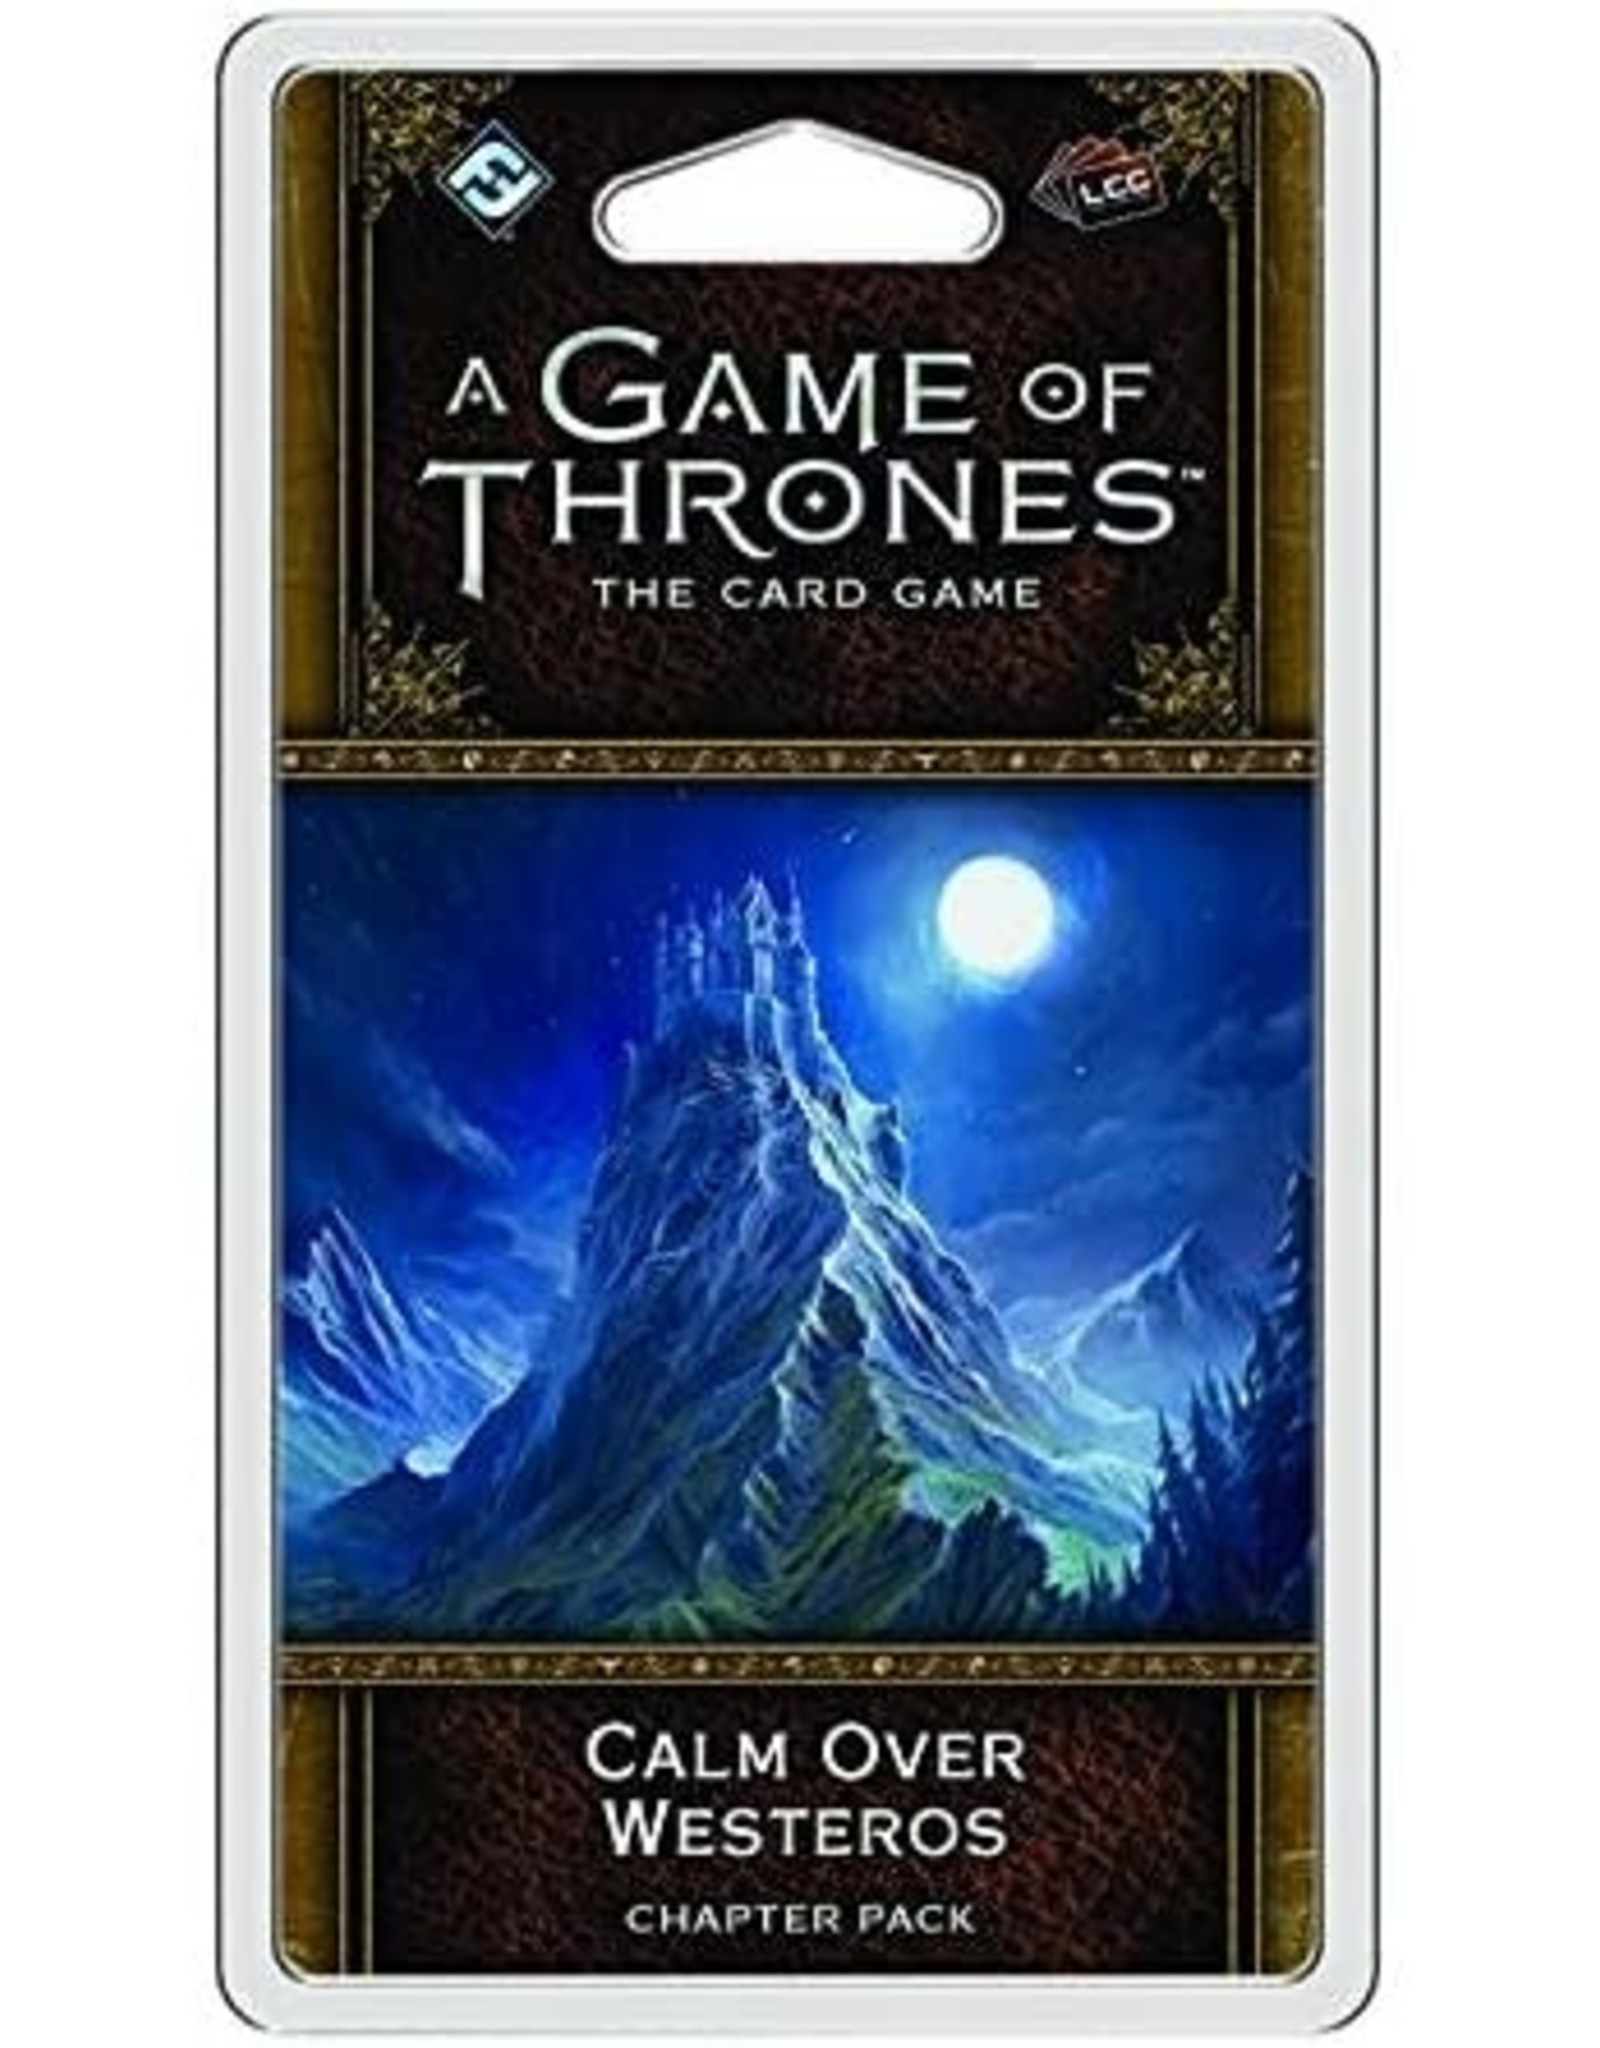 Game of Thrones LCG Calm Over Westeros Chapter Pack